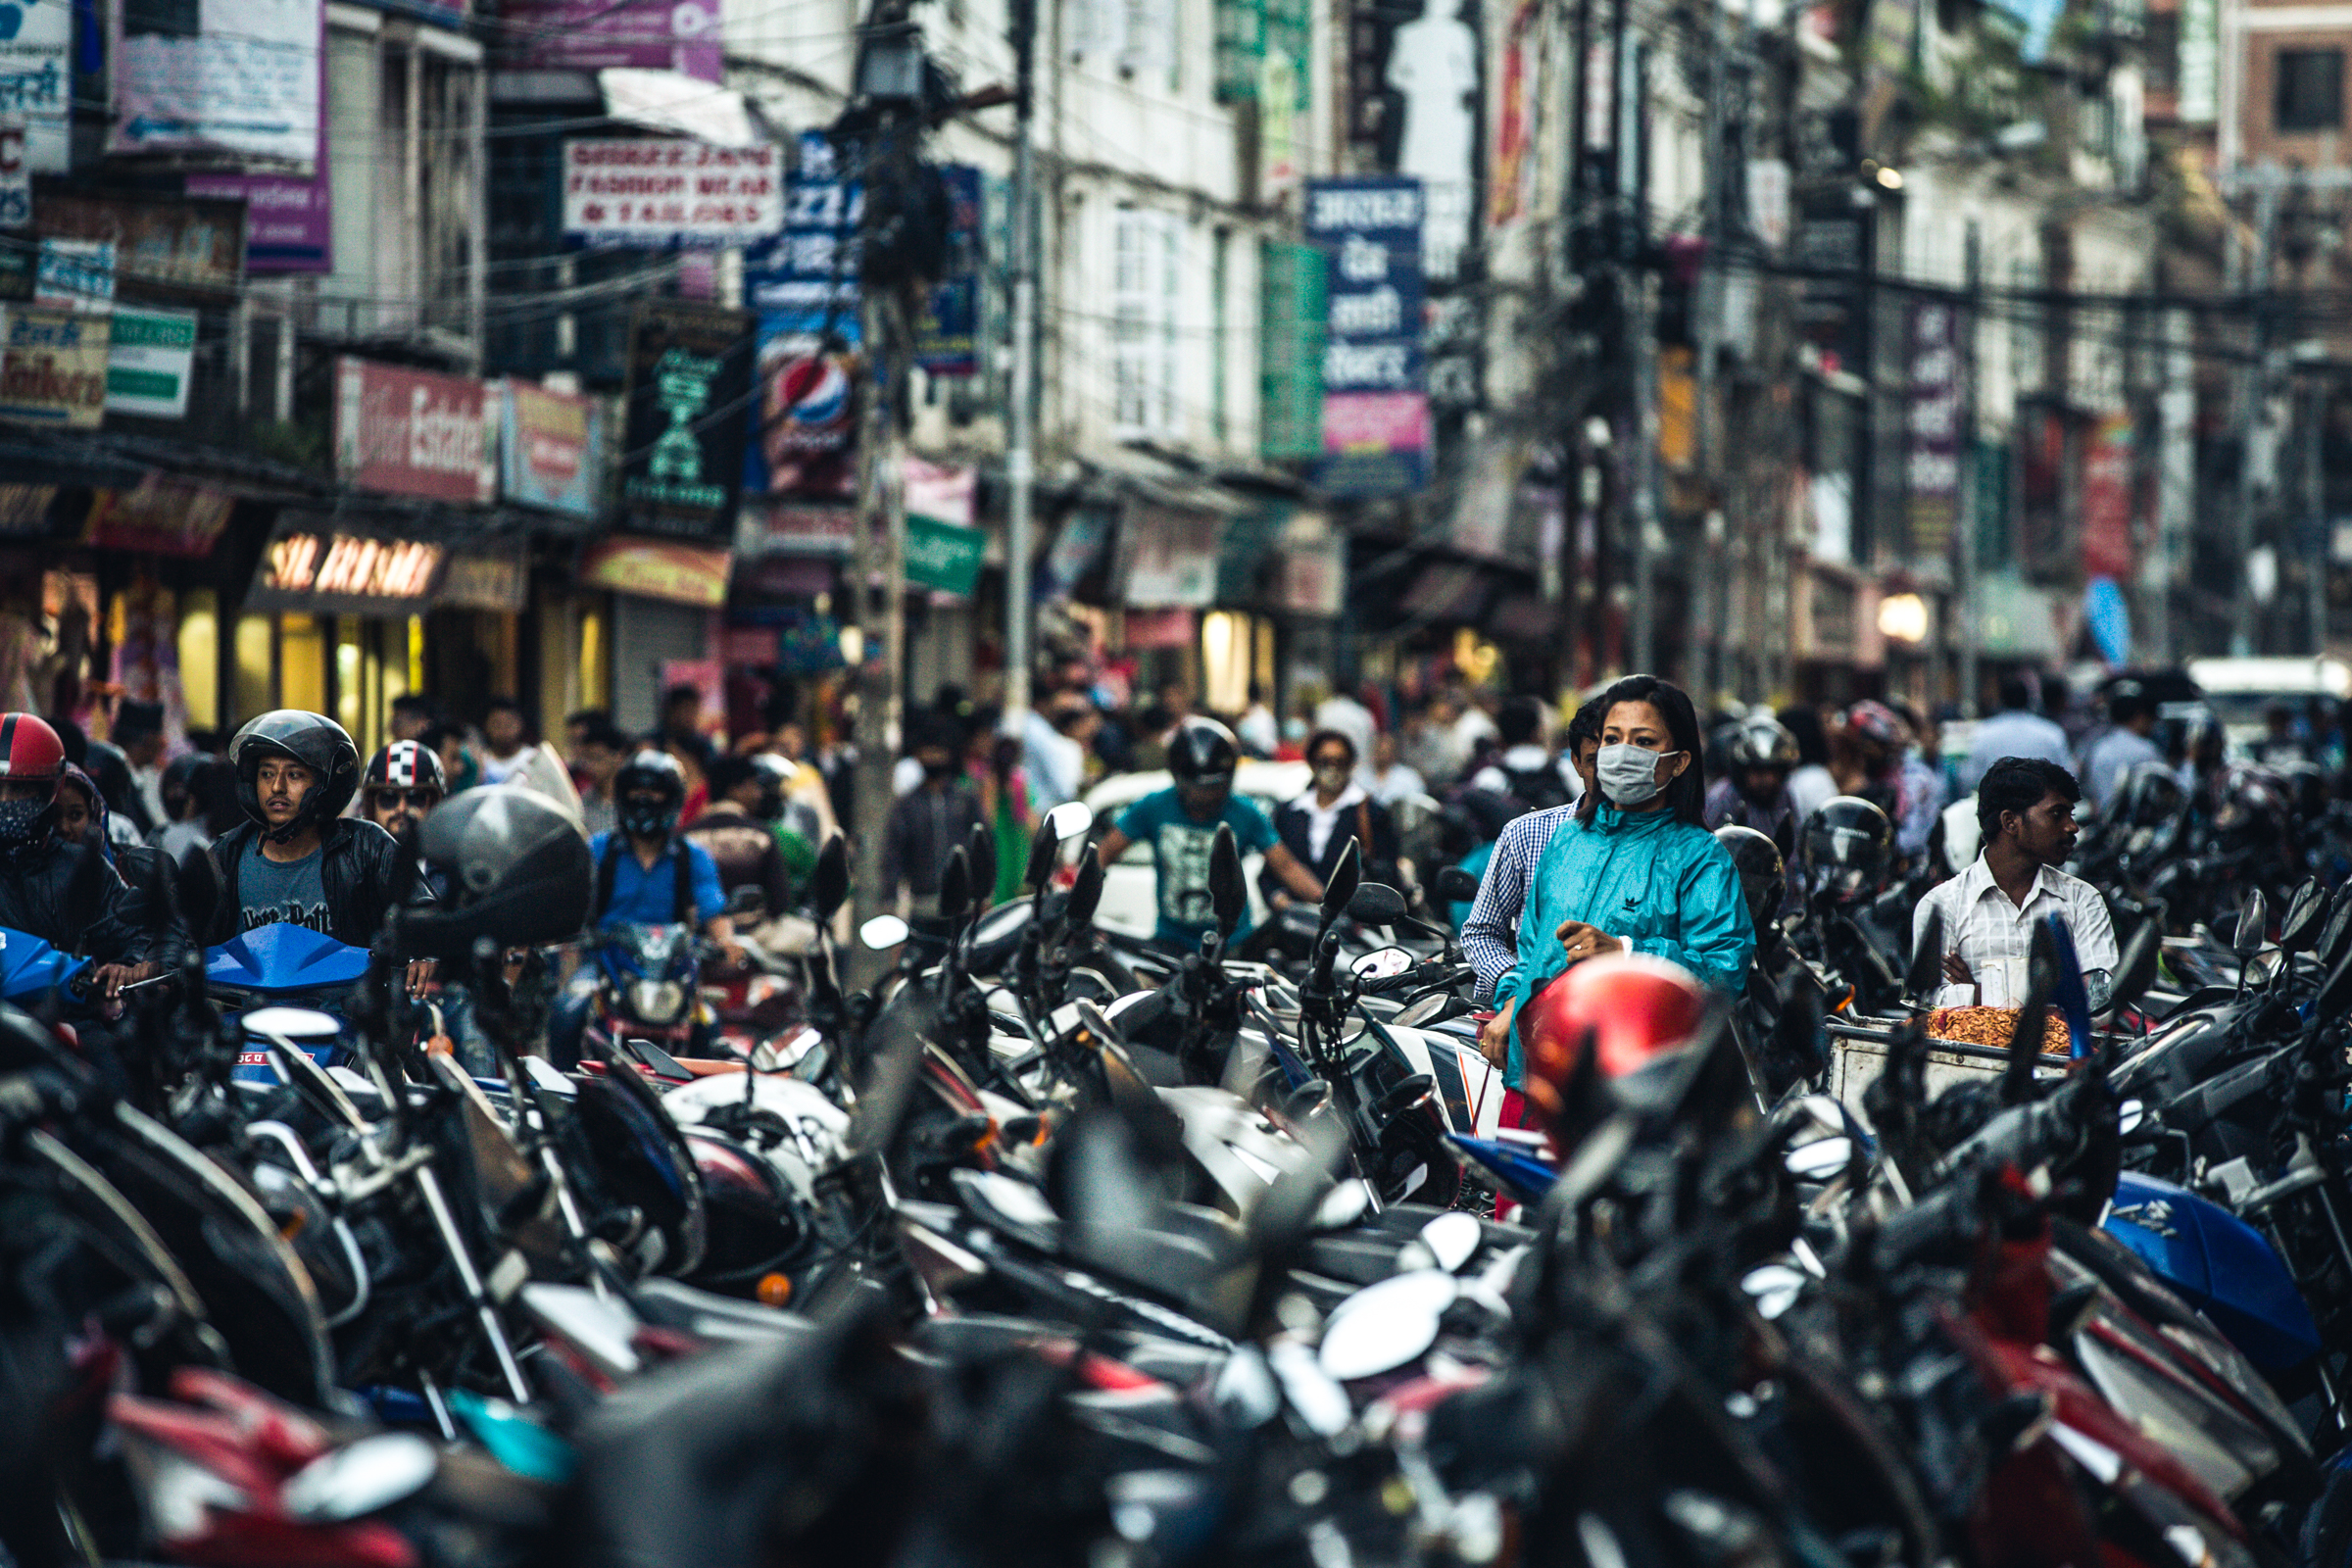 Two wheel chaos in Thamel.  200mm f3.5 1/250 ISO1000